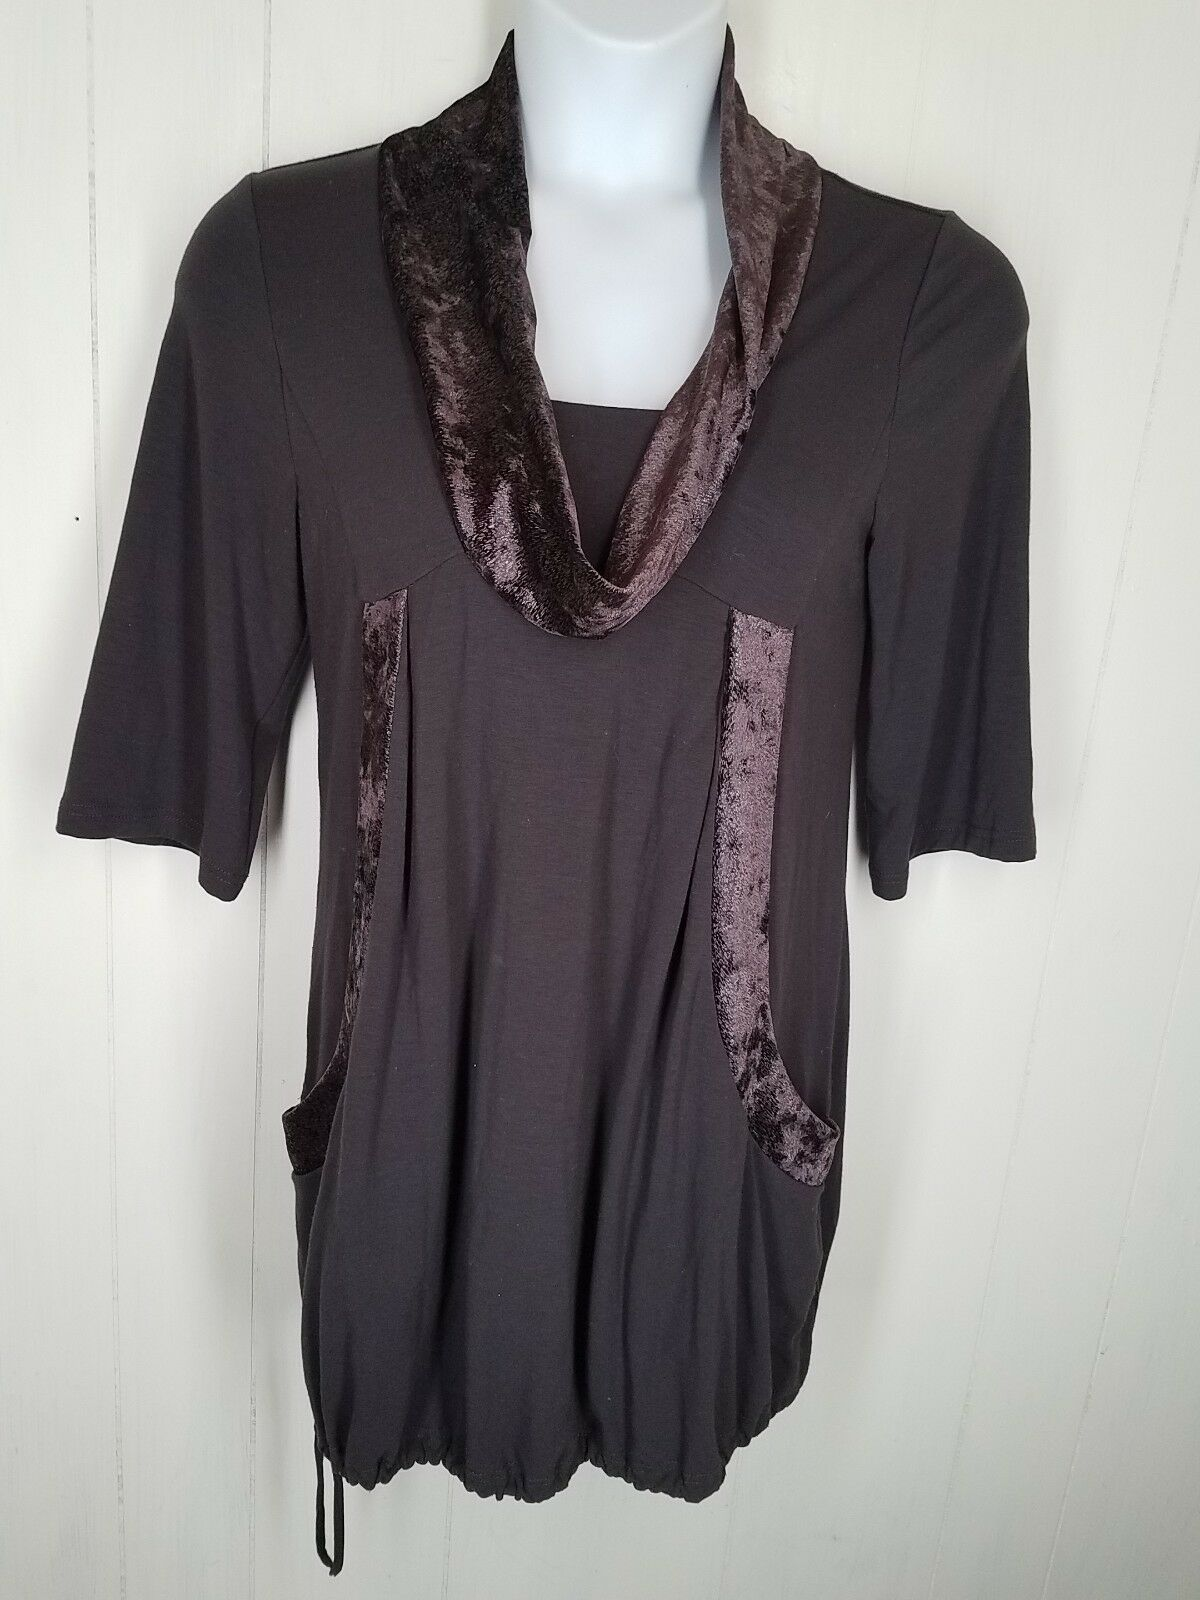 Tracy Porter Tunic top  size 4-6 purple 3 4 sleeve cowl